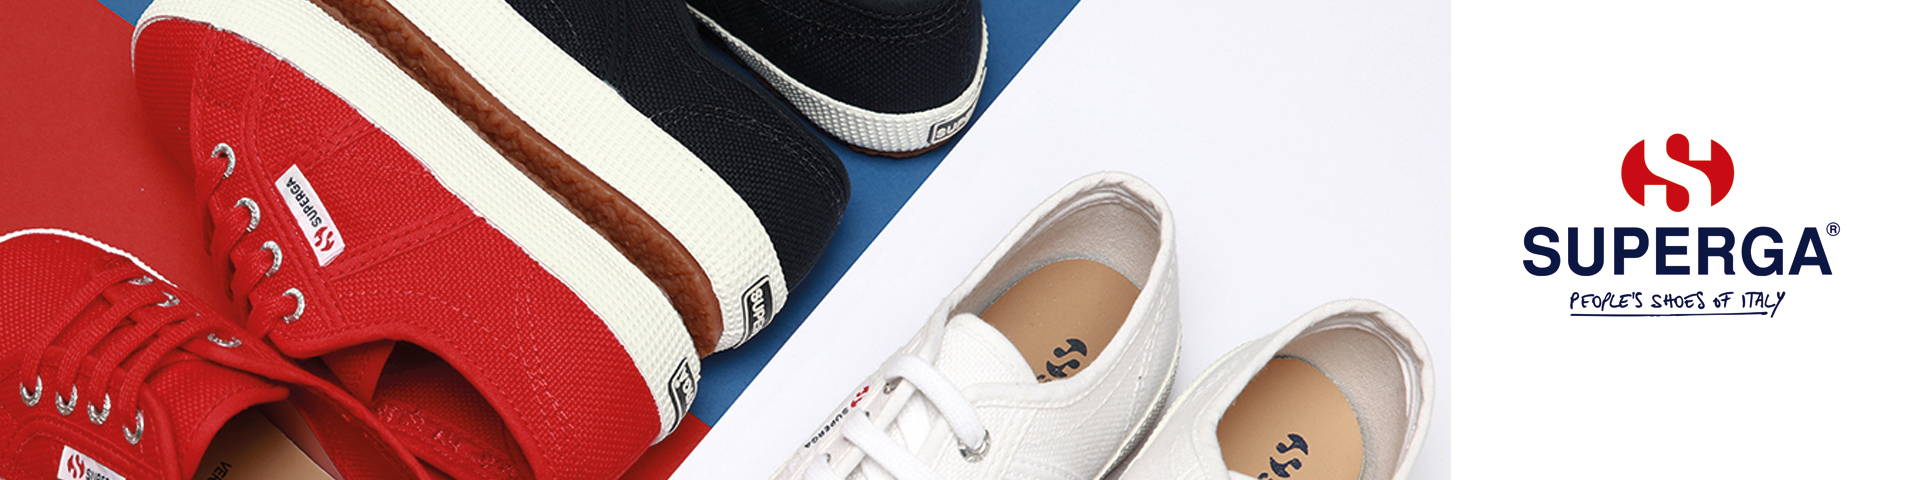 Catalogo Superga 49337f20c68